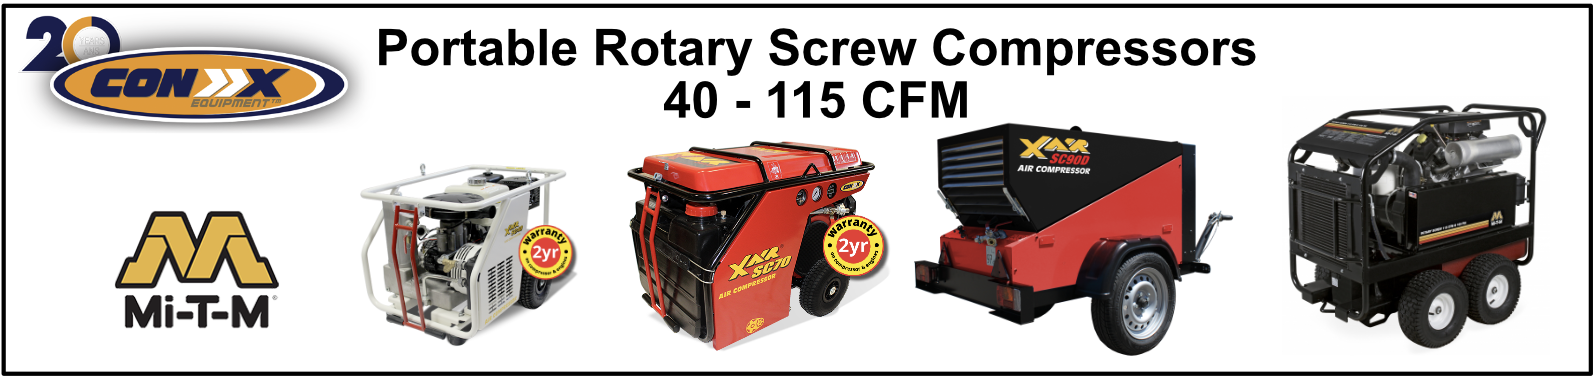 portable-rotary-screw-banner.png